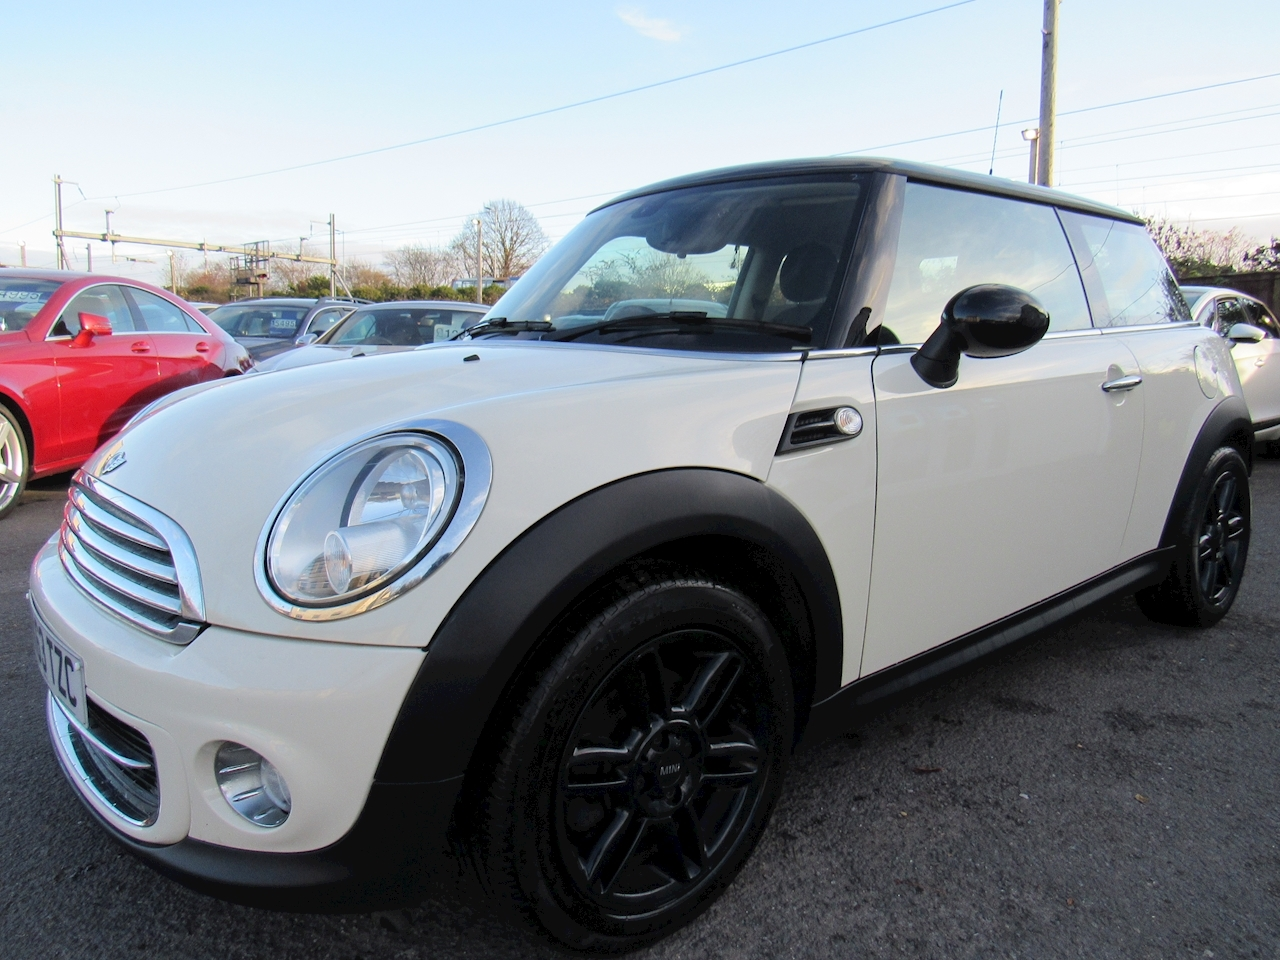 MINI Hatch Cooper Hatch Hatchback 1.6 Manual Petrol